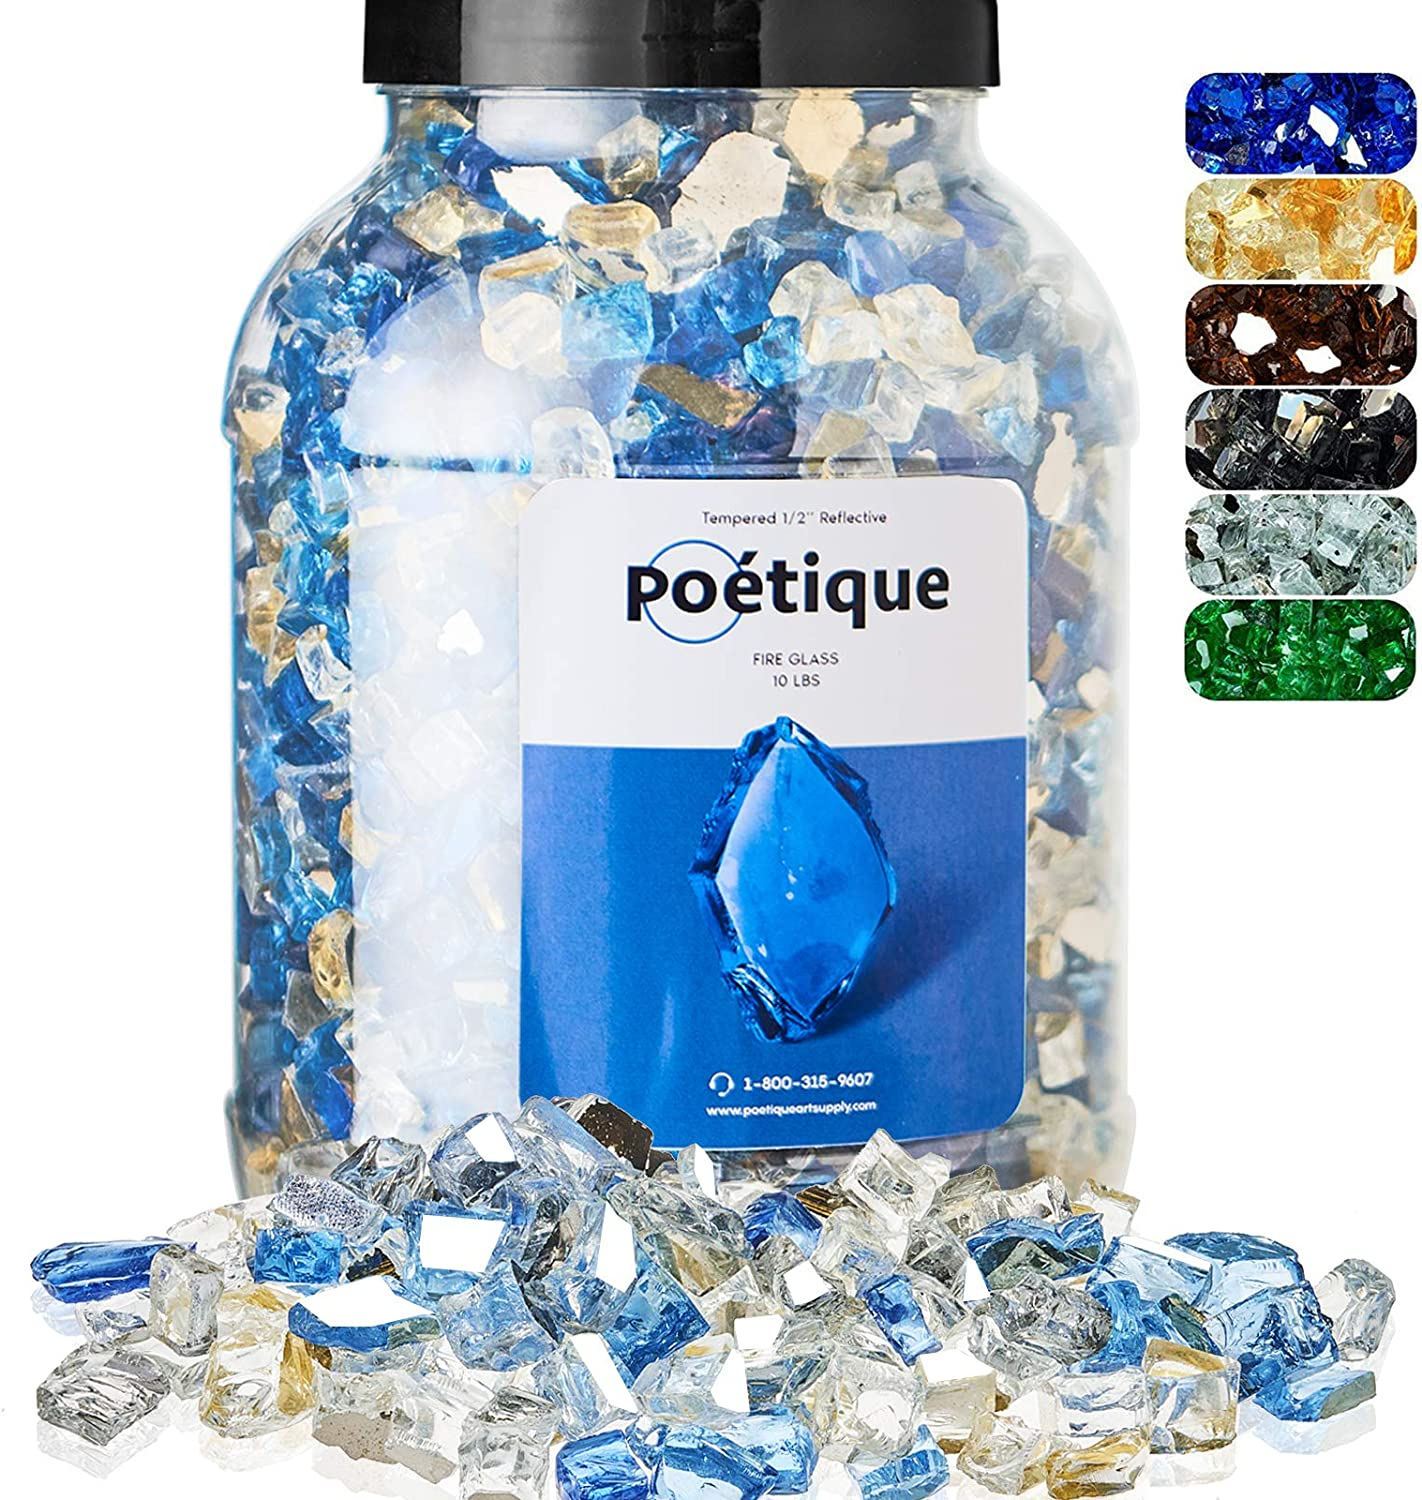 Fire Pit Glass - Blended Fire Glass for Fire Pit - Reflective Tempered Fireglass Rocks for Gas or Propane Fireplace Outdoors   1/2 Inch   10 Pounds   Ancient Blue, Platinum, Light Blue